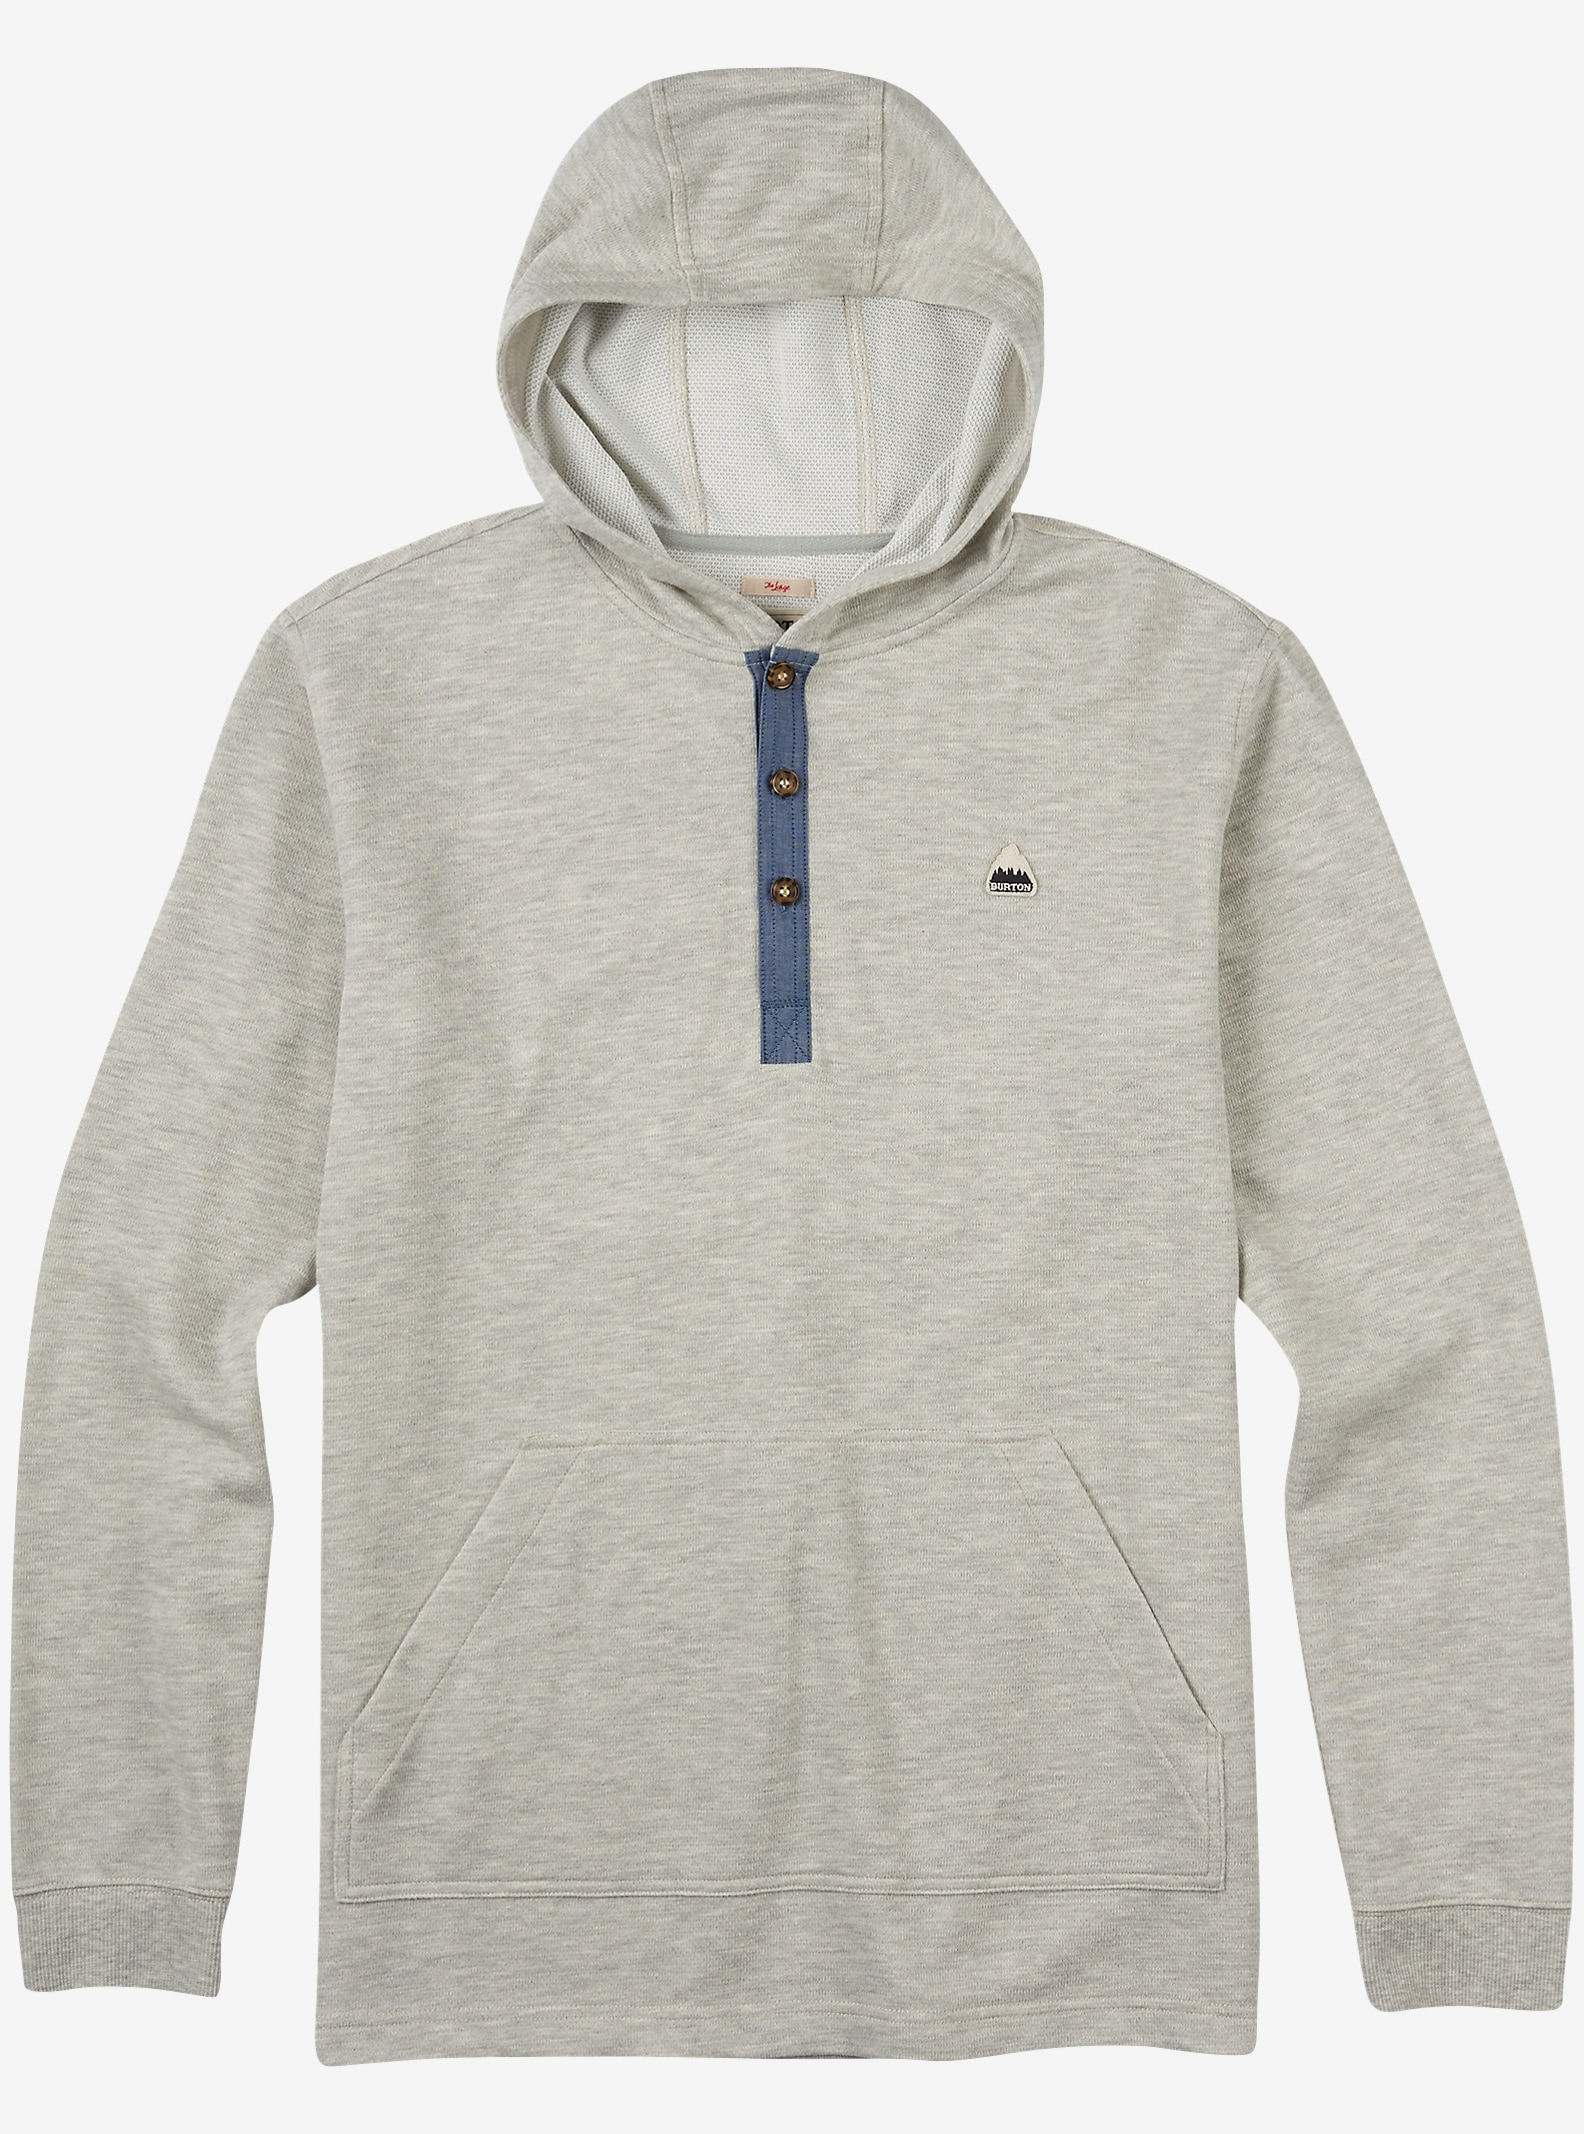 Burton Dexter Hooded Henley shown in High Rise Heather